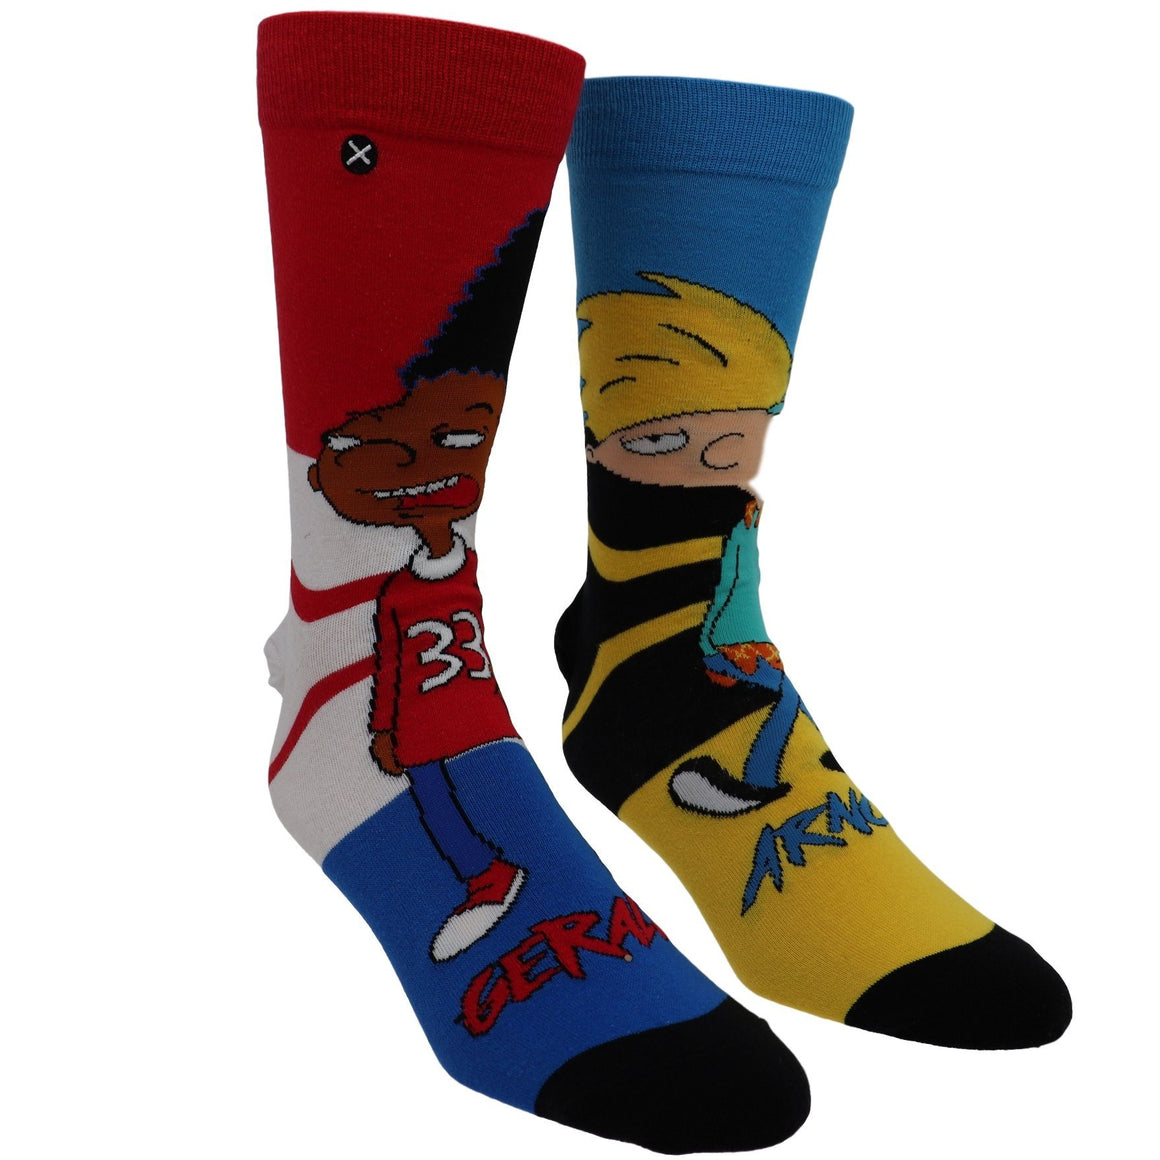 Nickelodeon Hey Arnold! 'Hillwood Boys' Socks by Odd Sox - The Sock Spot